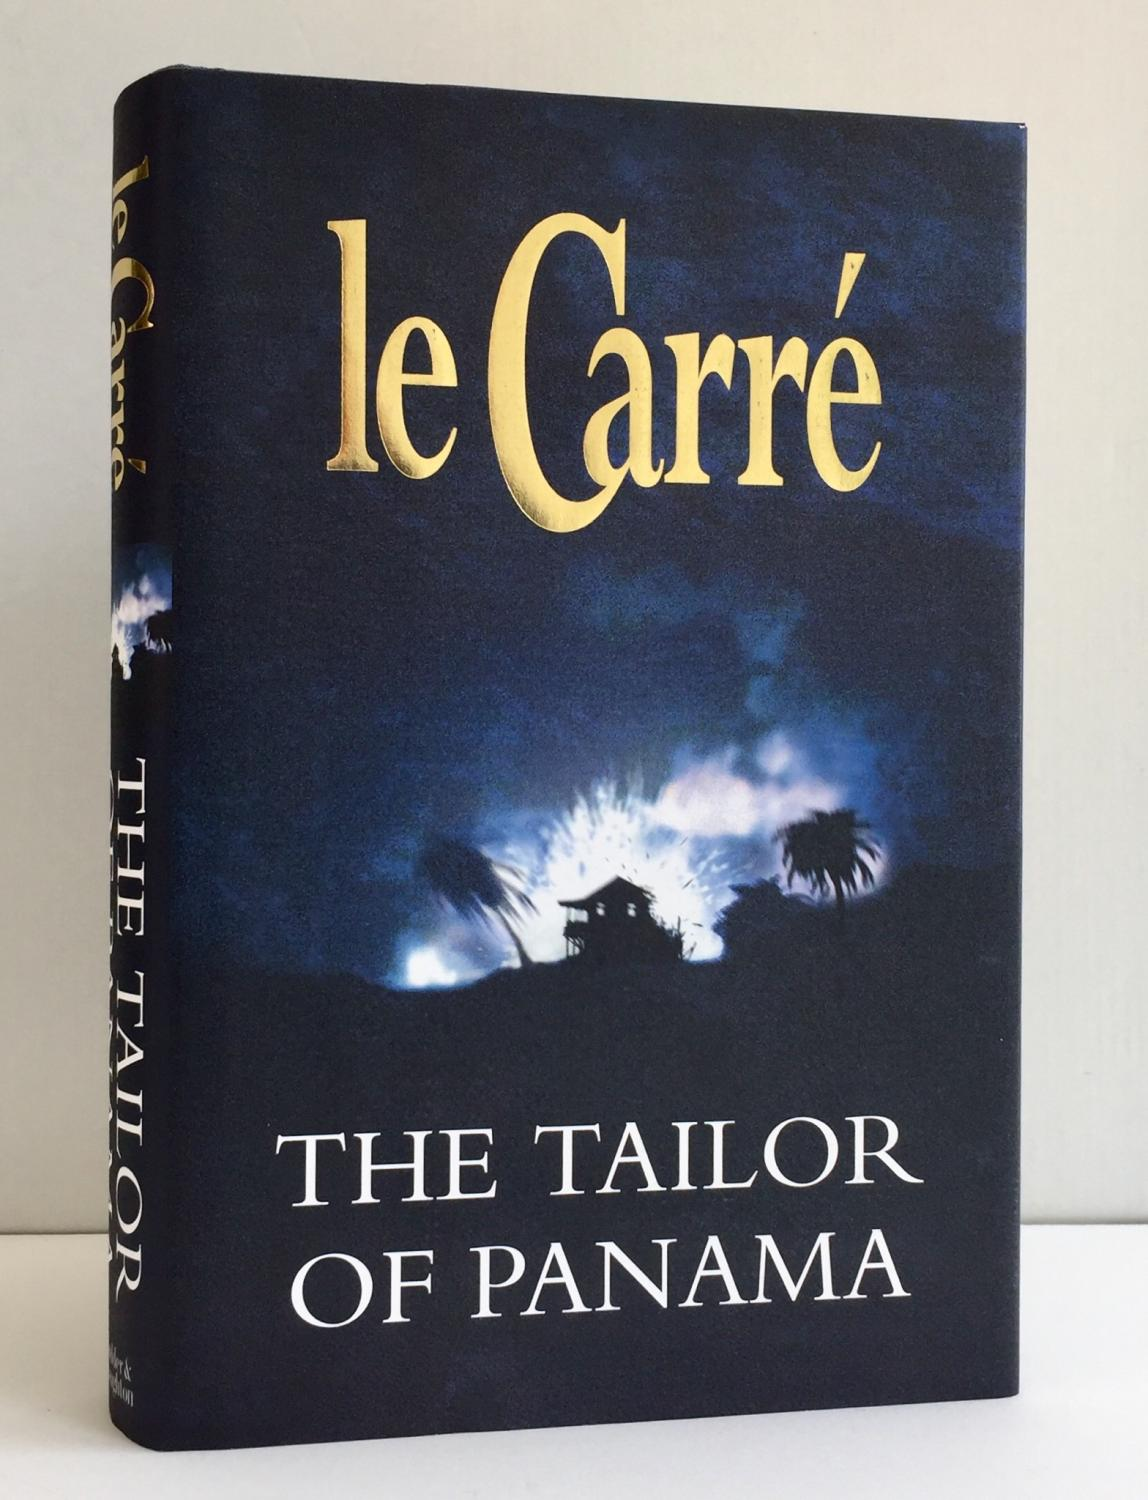 The_Tailor_of_Panama__SIGNED_by_the_author_LE_CARRE_John_Très_bon_Couverture_rigide